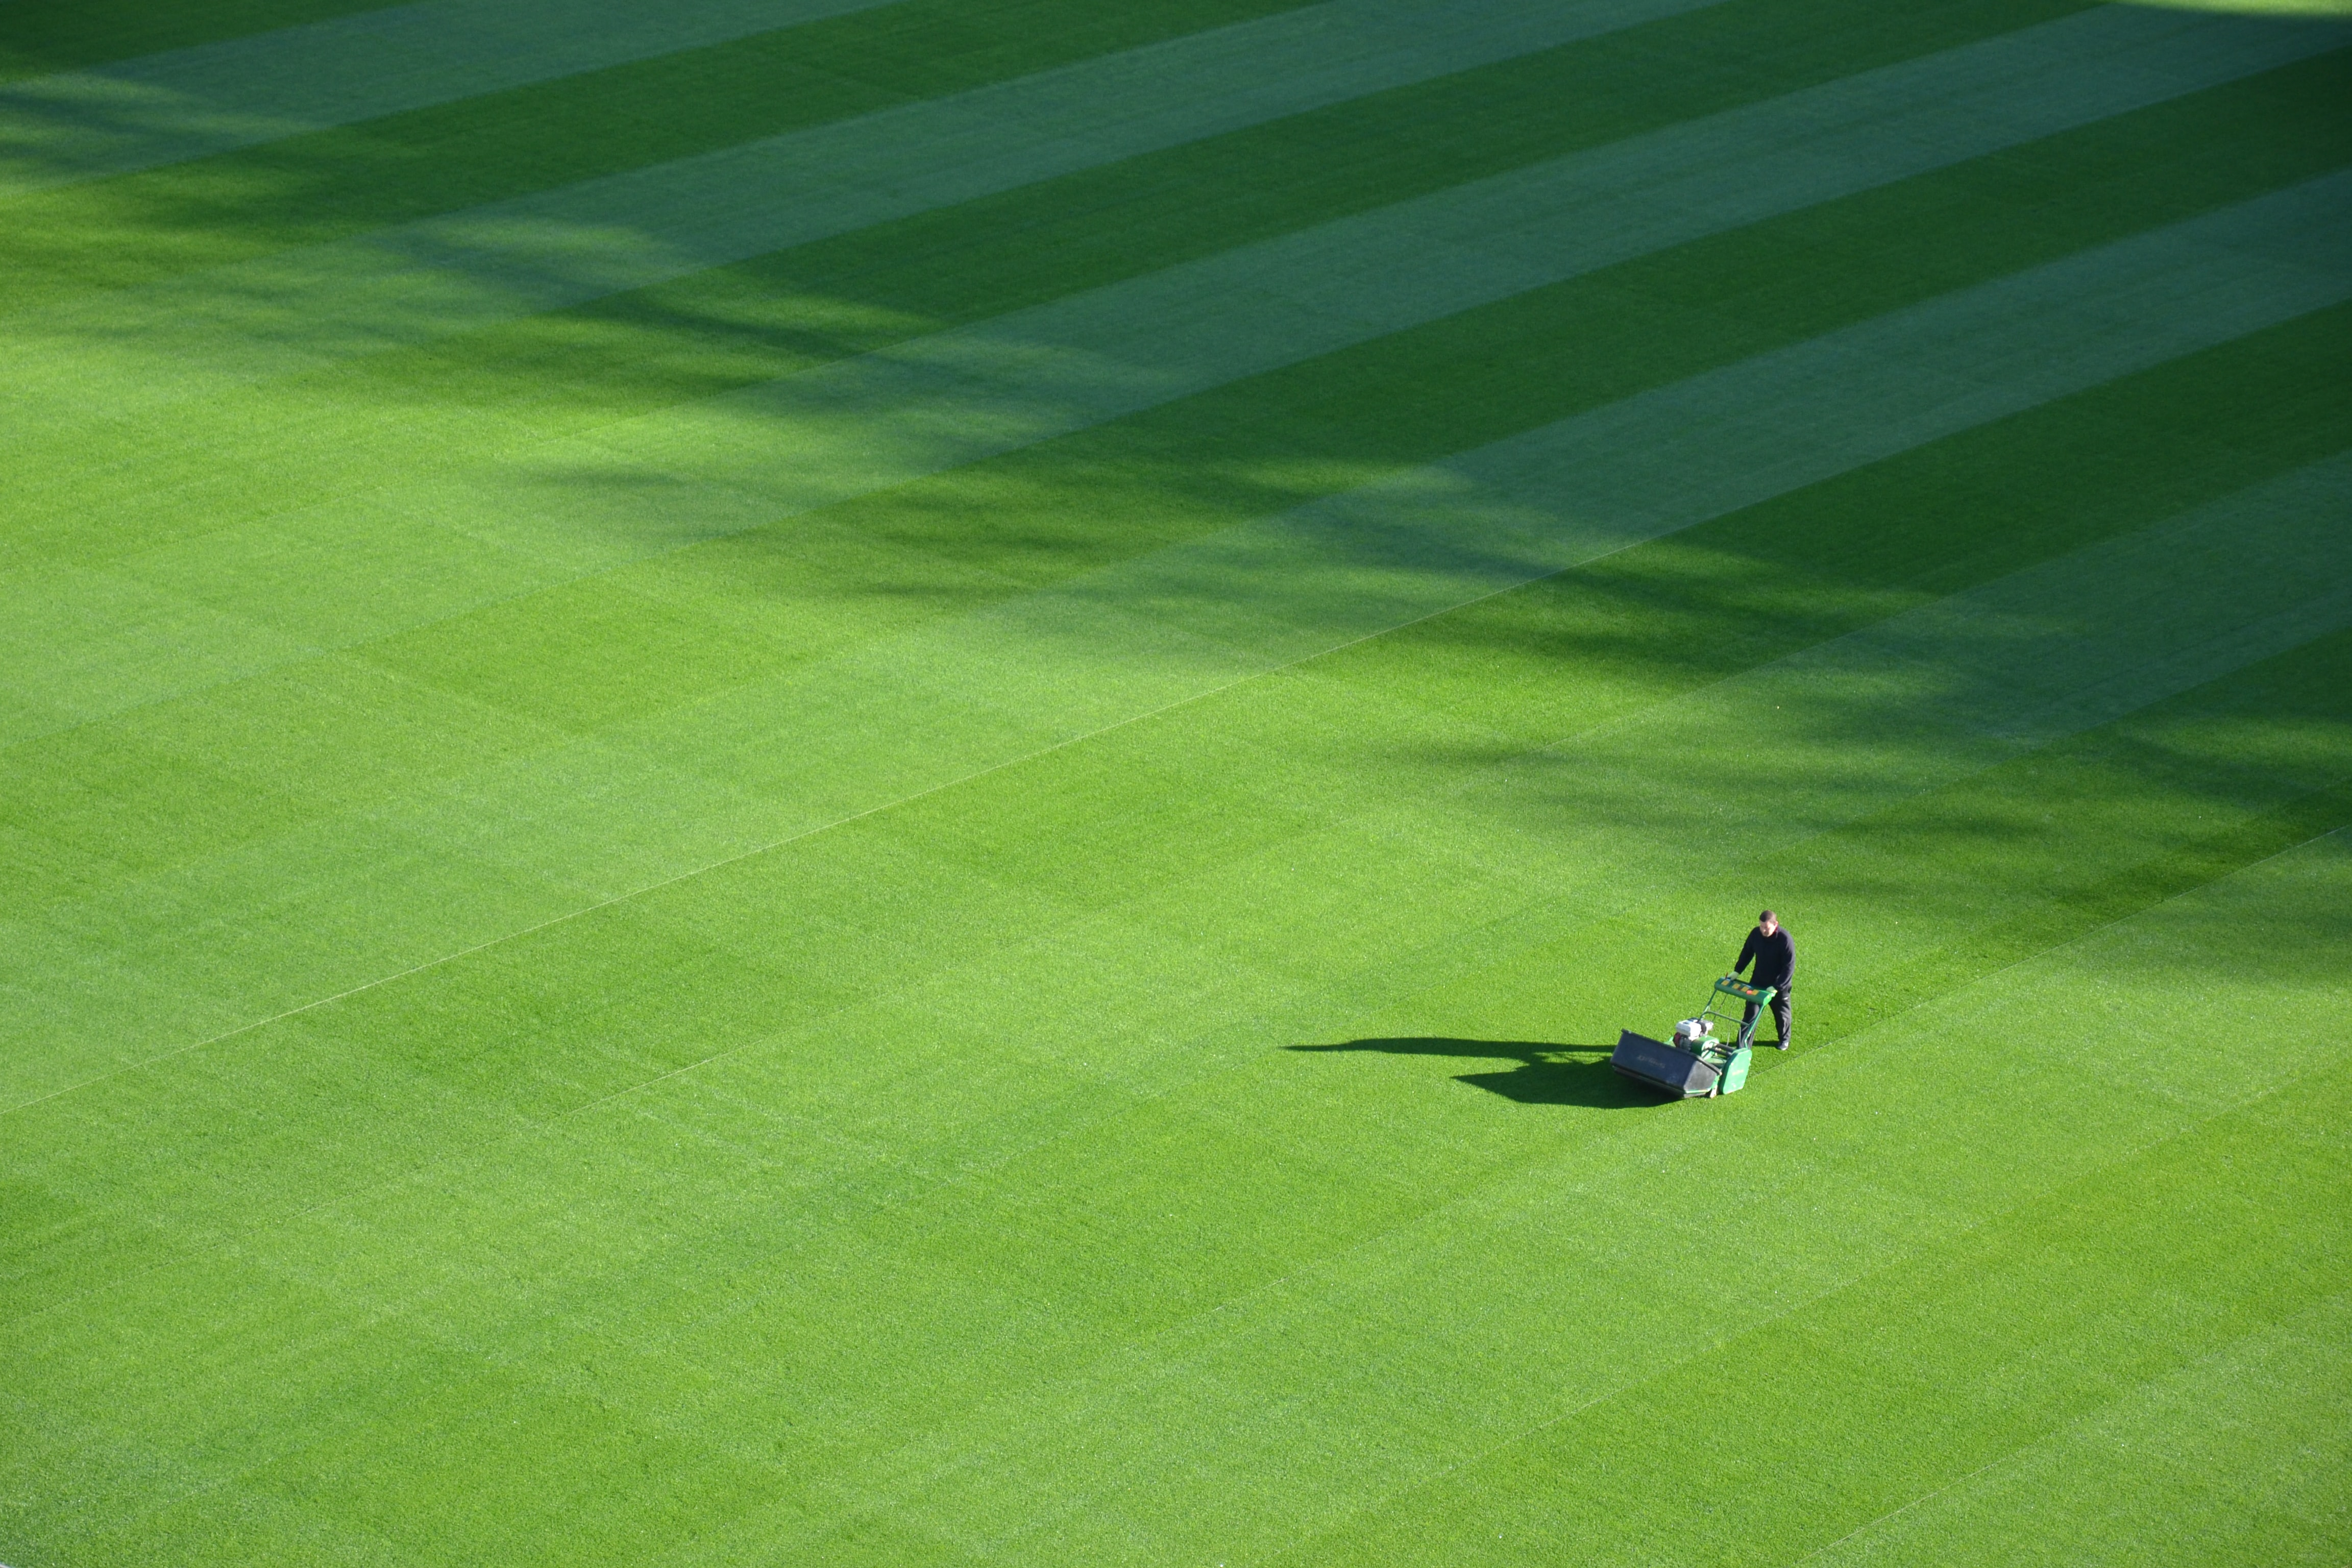 A person mowing the grass at Croke Park